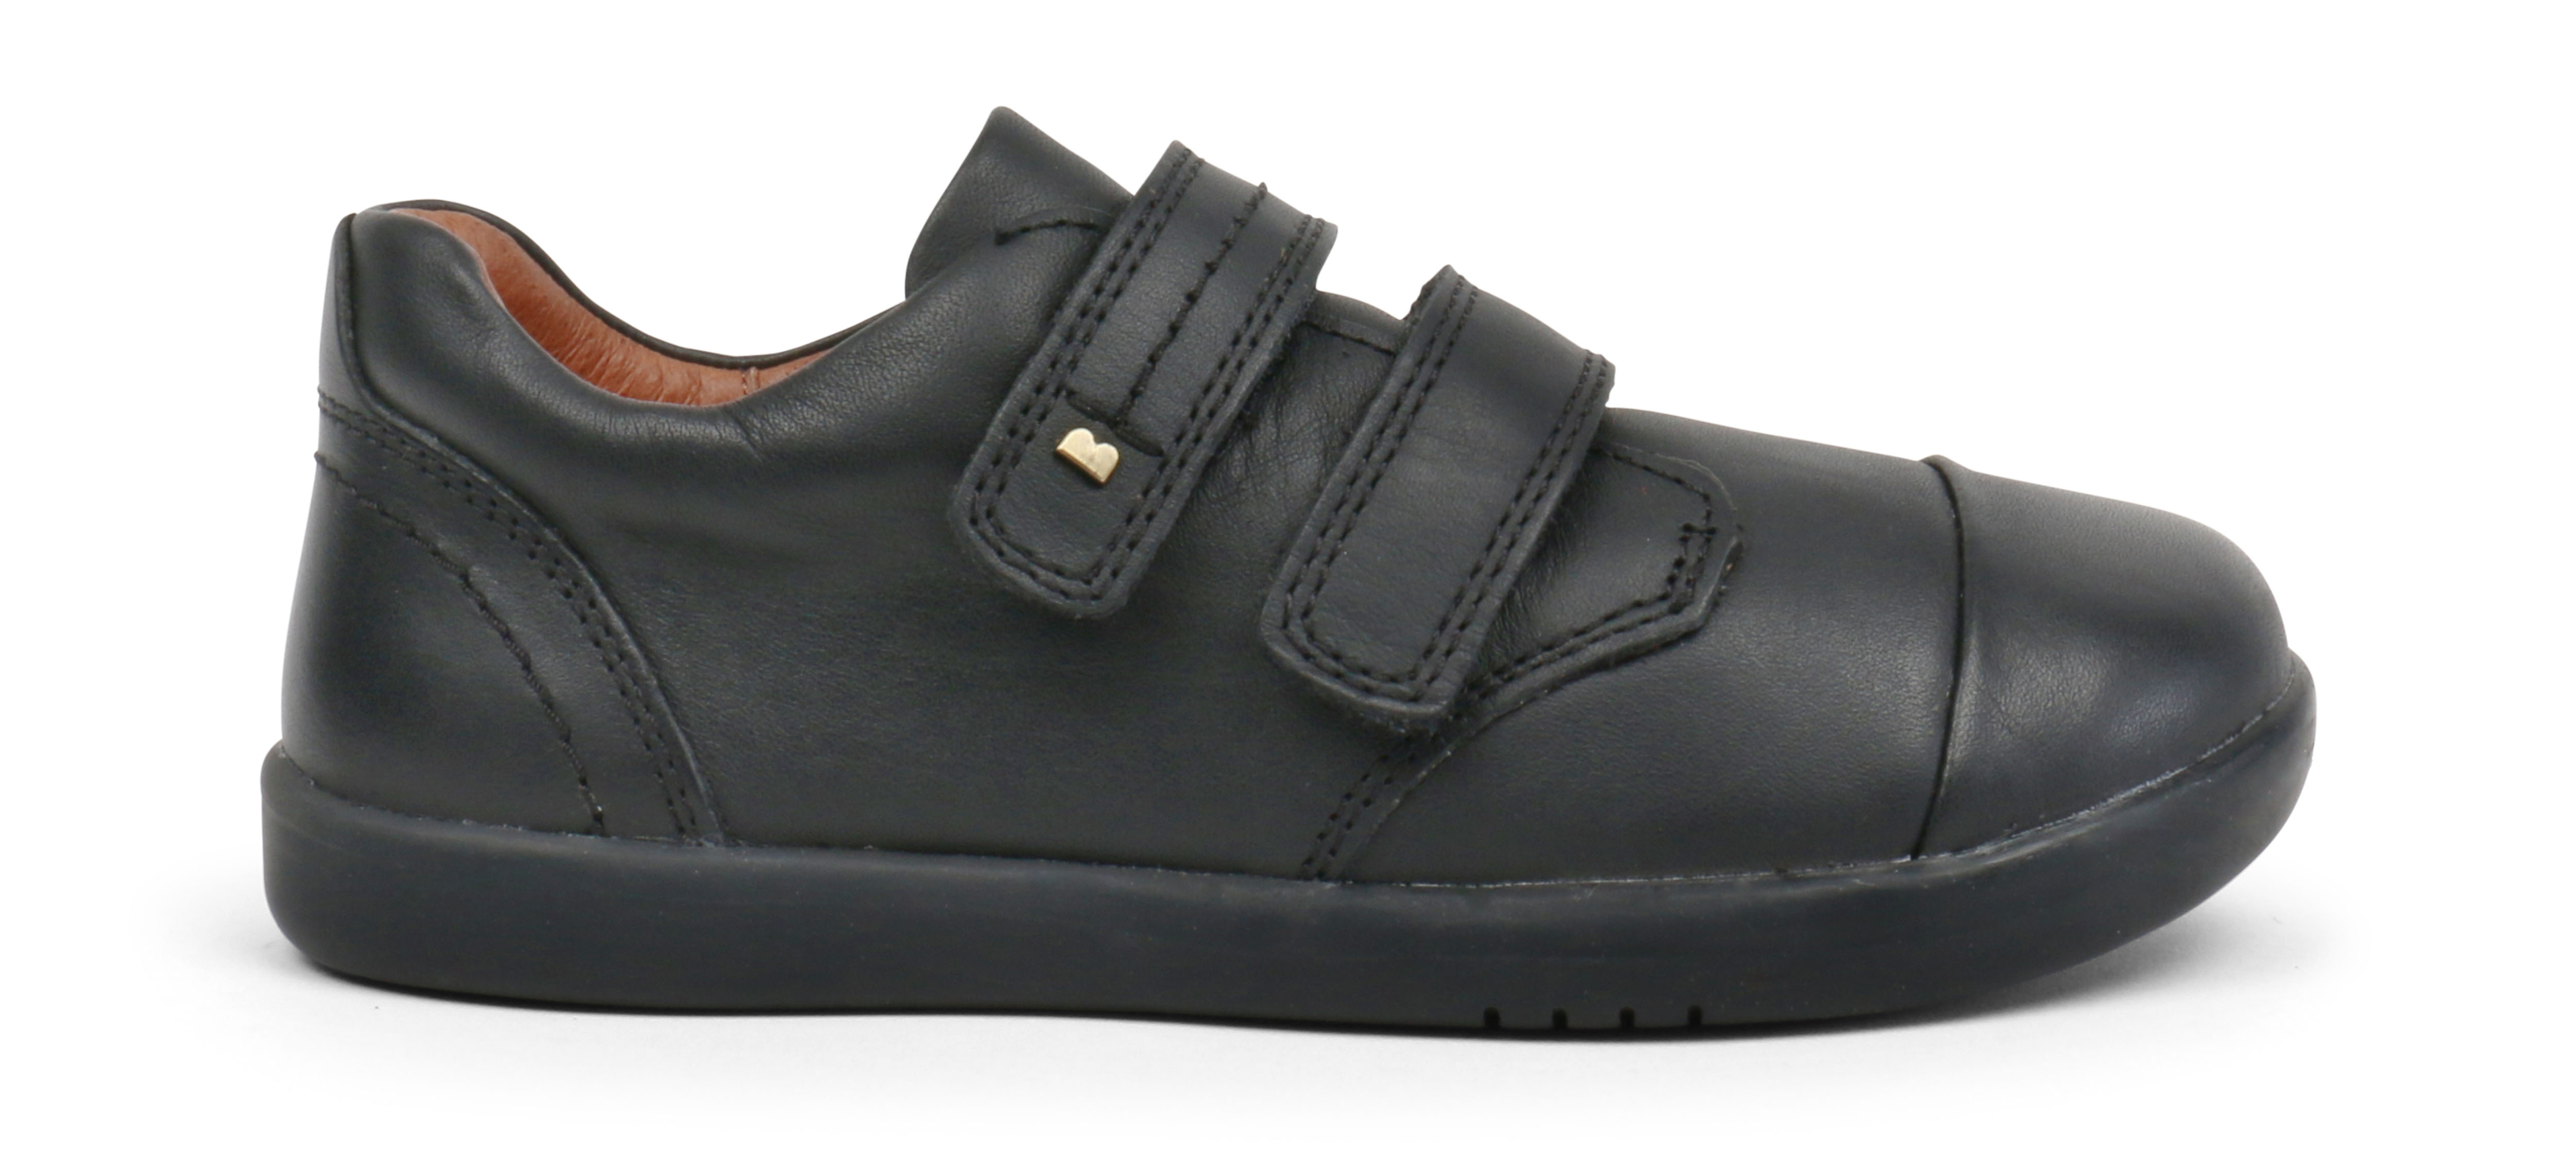 Kid+ Port in Black, from £46, Bobux